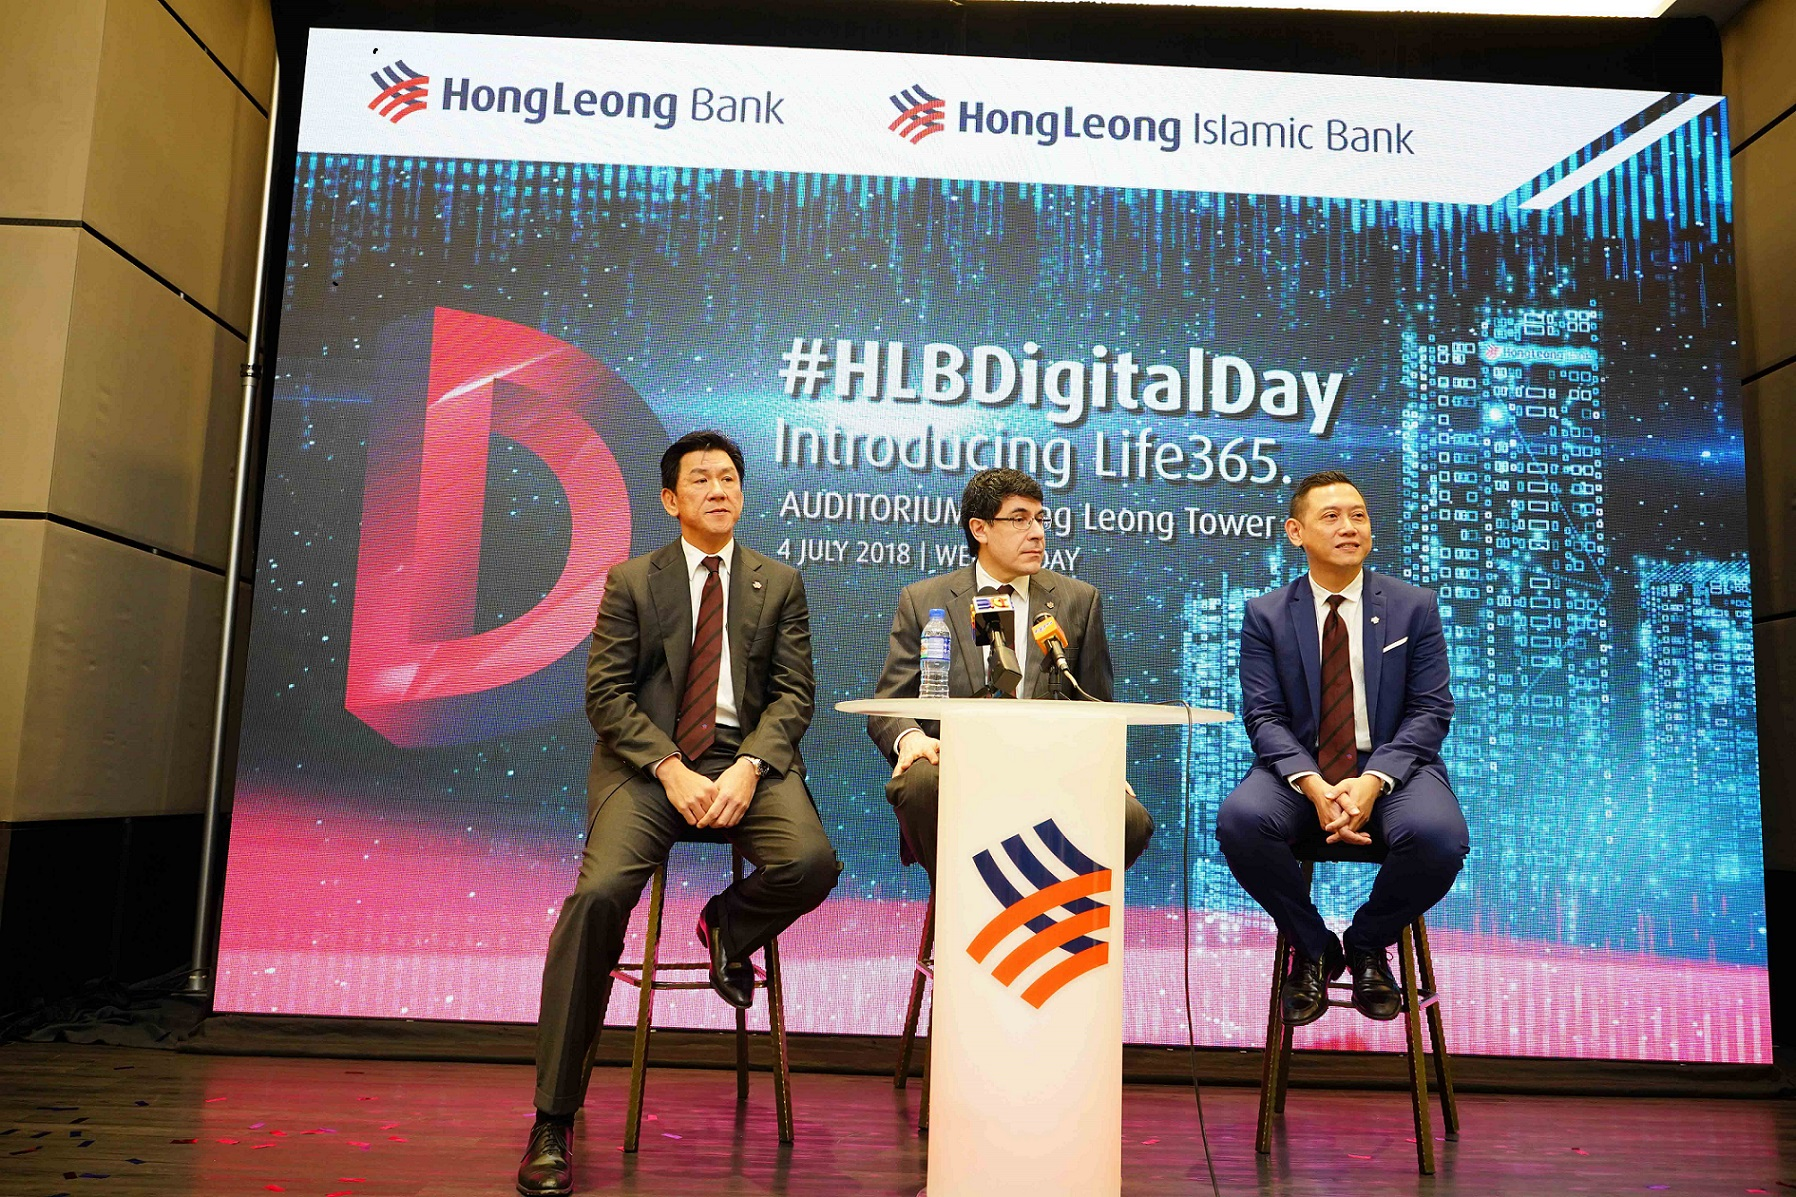 HONG LEONG BANK CELEBRATES CUSTOMERS' DIGITAL INNOVATION AND EXPERIENCES WITH DIGITAL DAY 2018